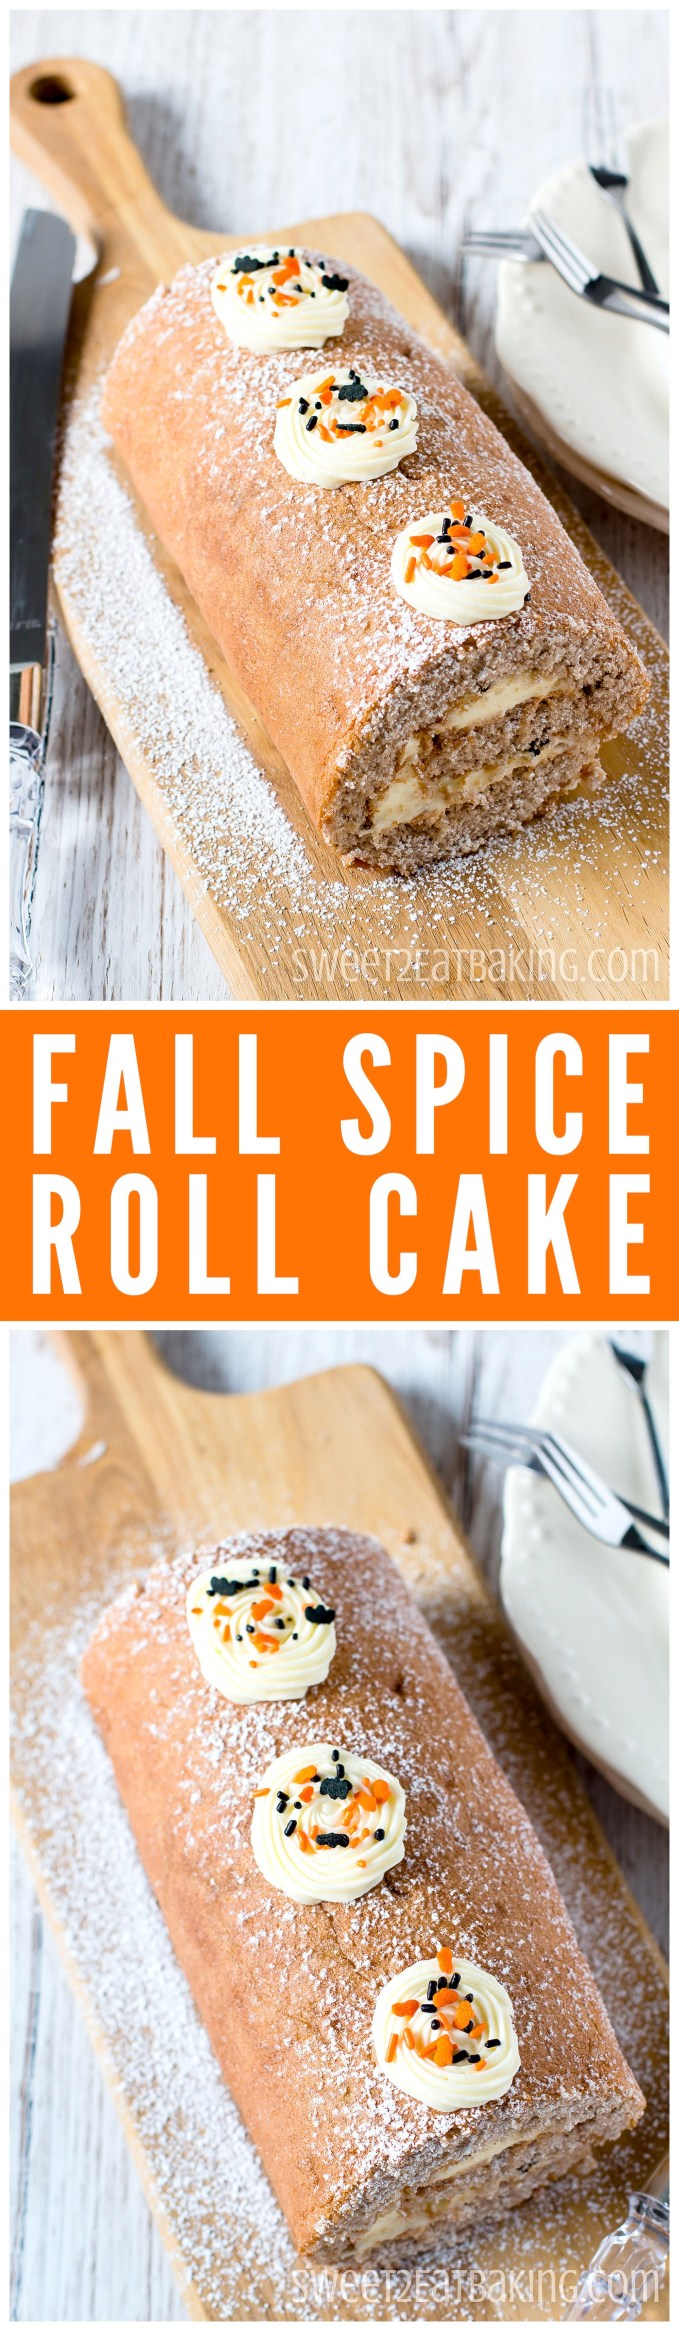 Halloween Fall Spice Swiss Cake Roll Roulade Recipe by Sweet2EatBaking.com | Delicately spiced with  cinnamon, nutmeg, ginger, allspice, cloves, and filled with a tangy cream cheese frosting. The perfect cake for Fall or Halloween